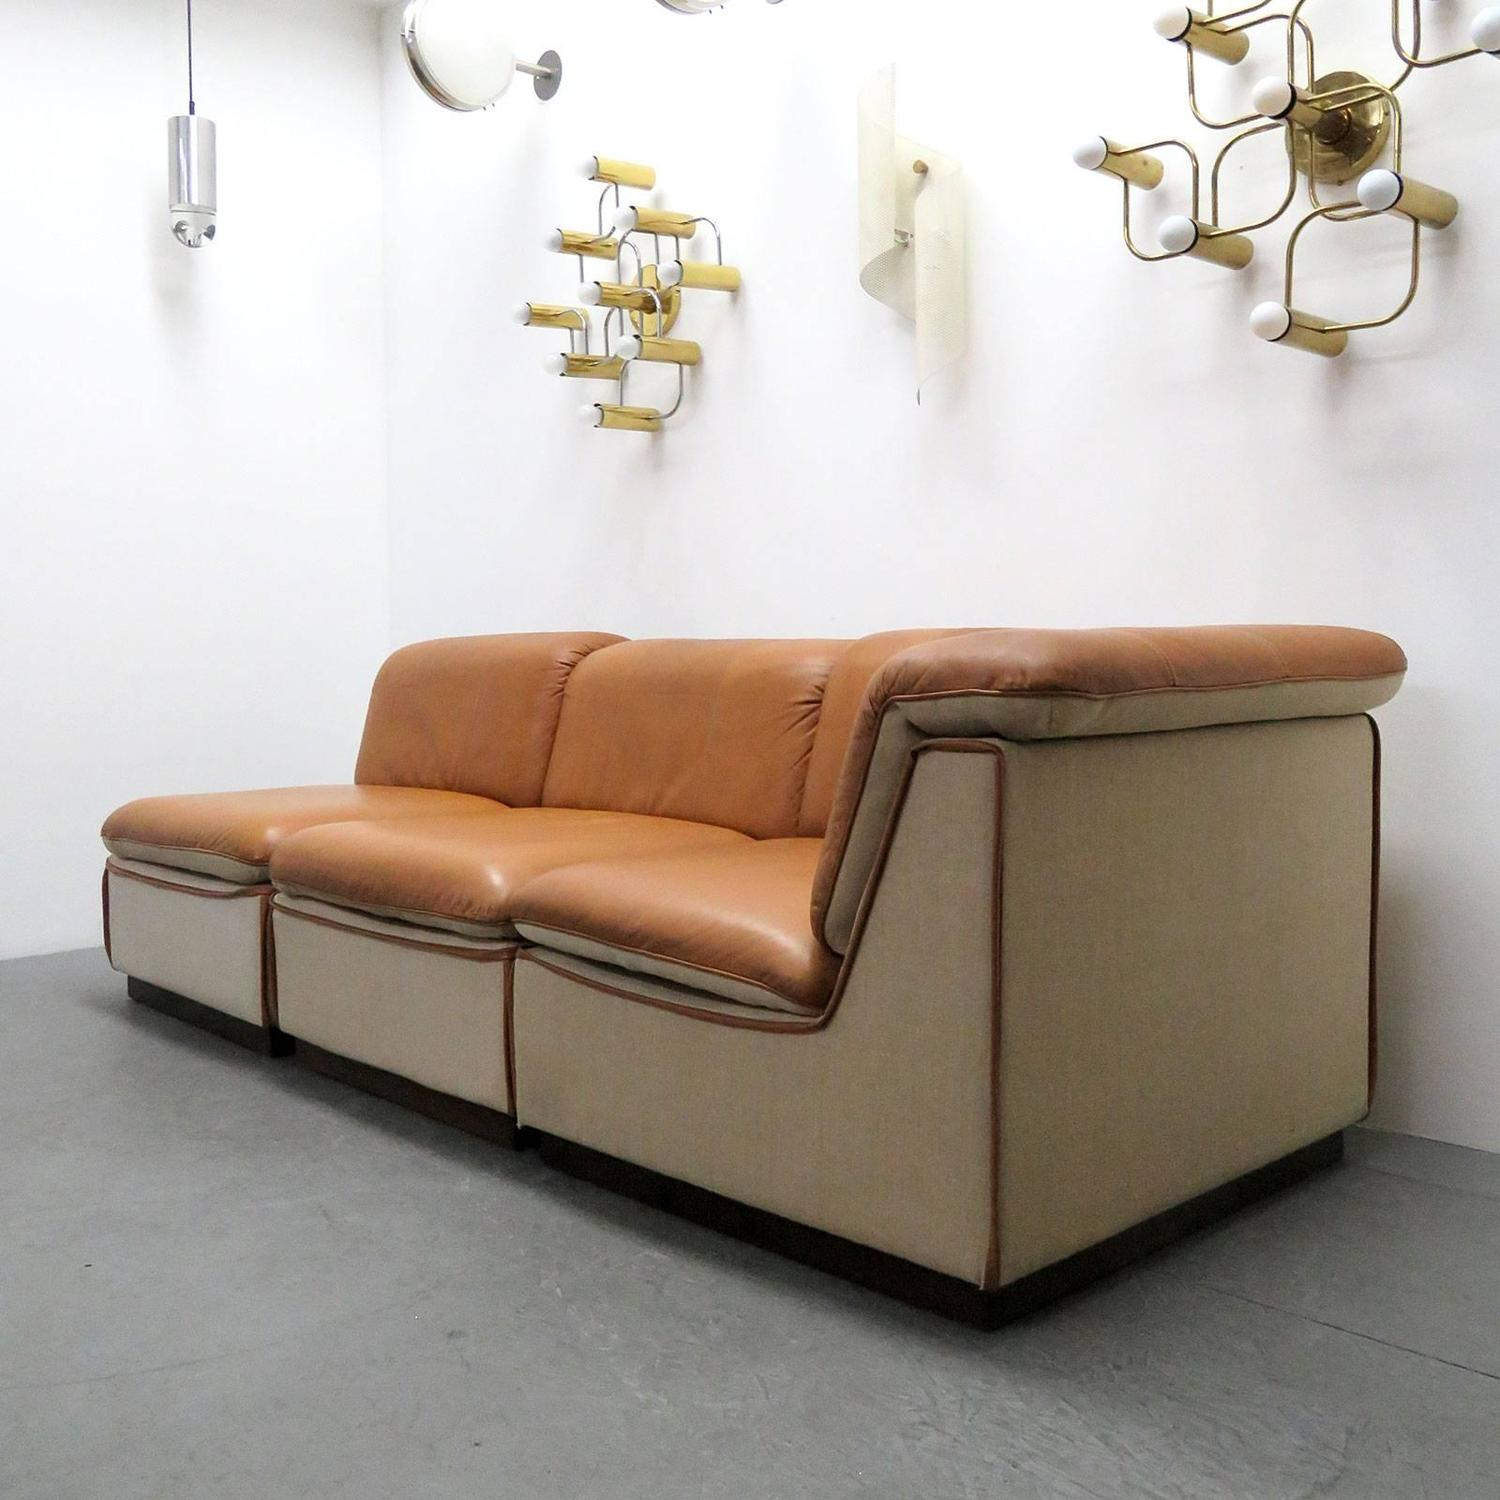 Finnish Modular Leather Sofa For Sale At 1stdibs